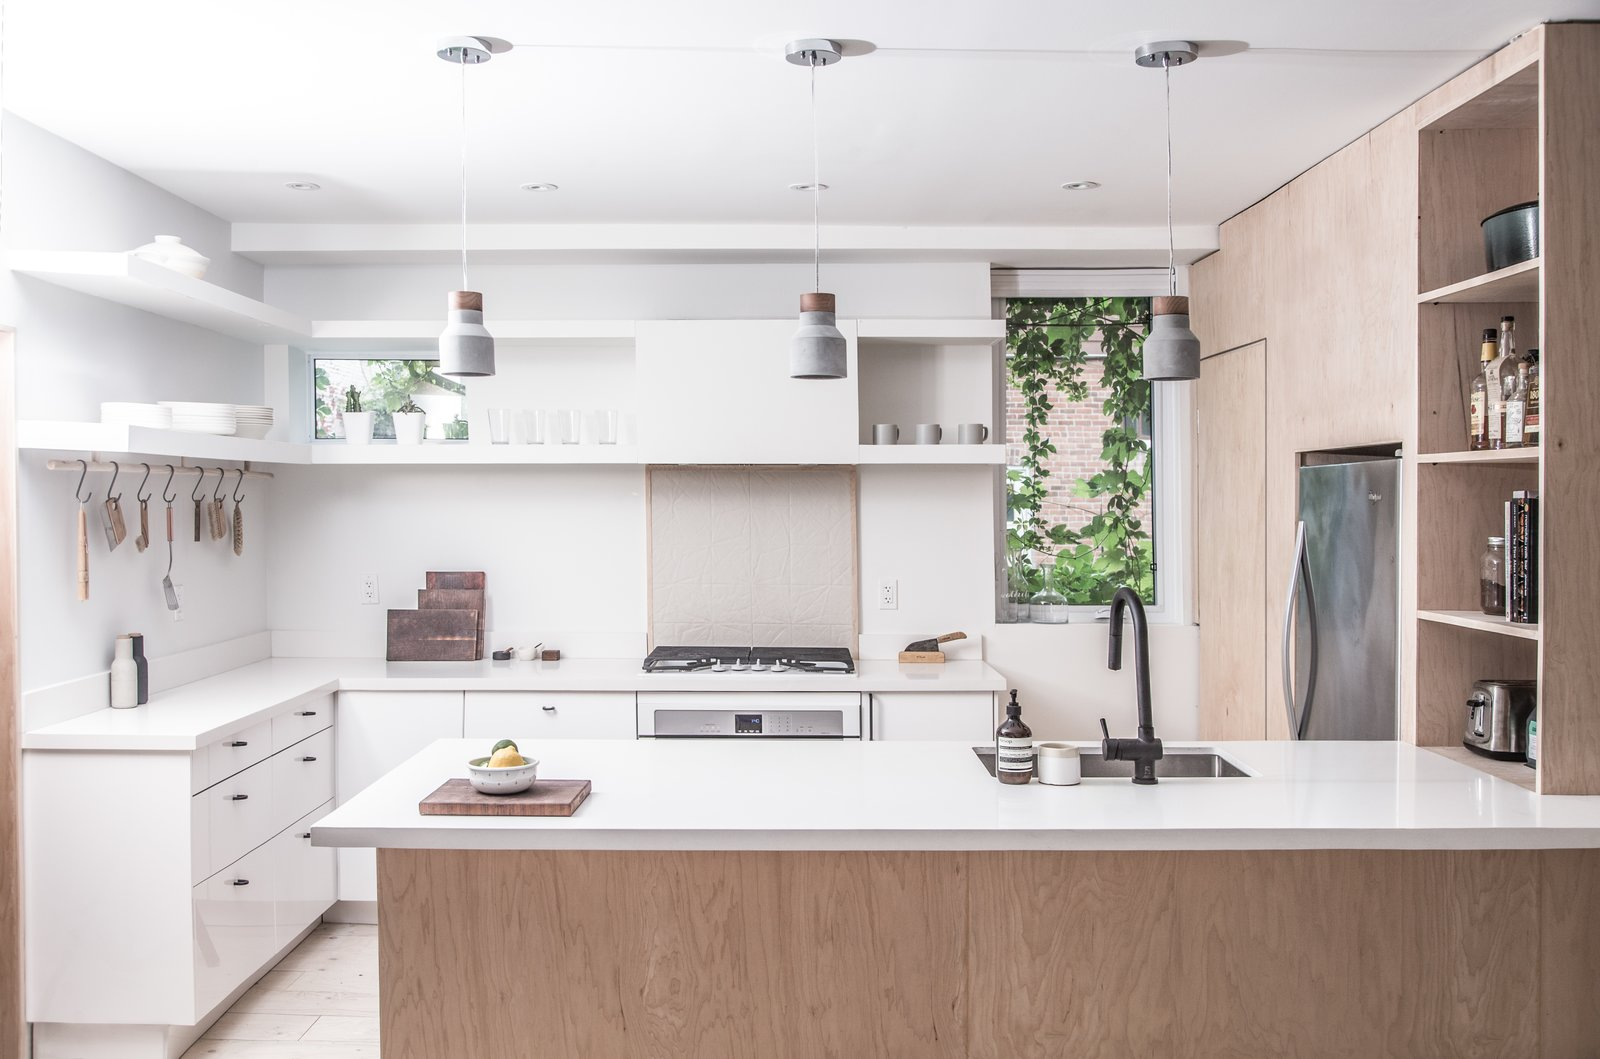 """Kitchen, Refrigerator, Range, Pendant Lighting, Recessed Lighting, Open Cabinet, Wall Oven, Undermount Sink, and Light Hardwood Floor <span style=""""font-family: Theinhardt, -apple-system, BlinkMacSystemFont, &quot;Segoe UI&quot;, Roboto, Oxygen-Sans, Ubuntu, Cantarell, &quot;Helvetica Neue&quot;, sans-serif;"""">For this small west Toronto renovation, rather than imagine a home comprised of rooms within an open plan the architects conceived a room revolving around a singular mass.</span>  Sheridan Residence"""